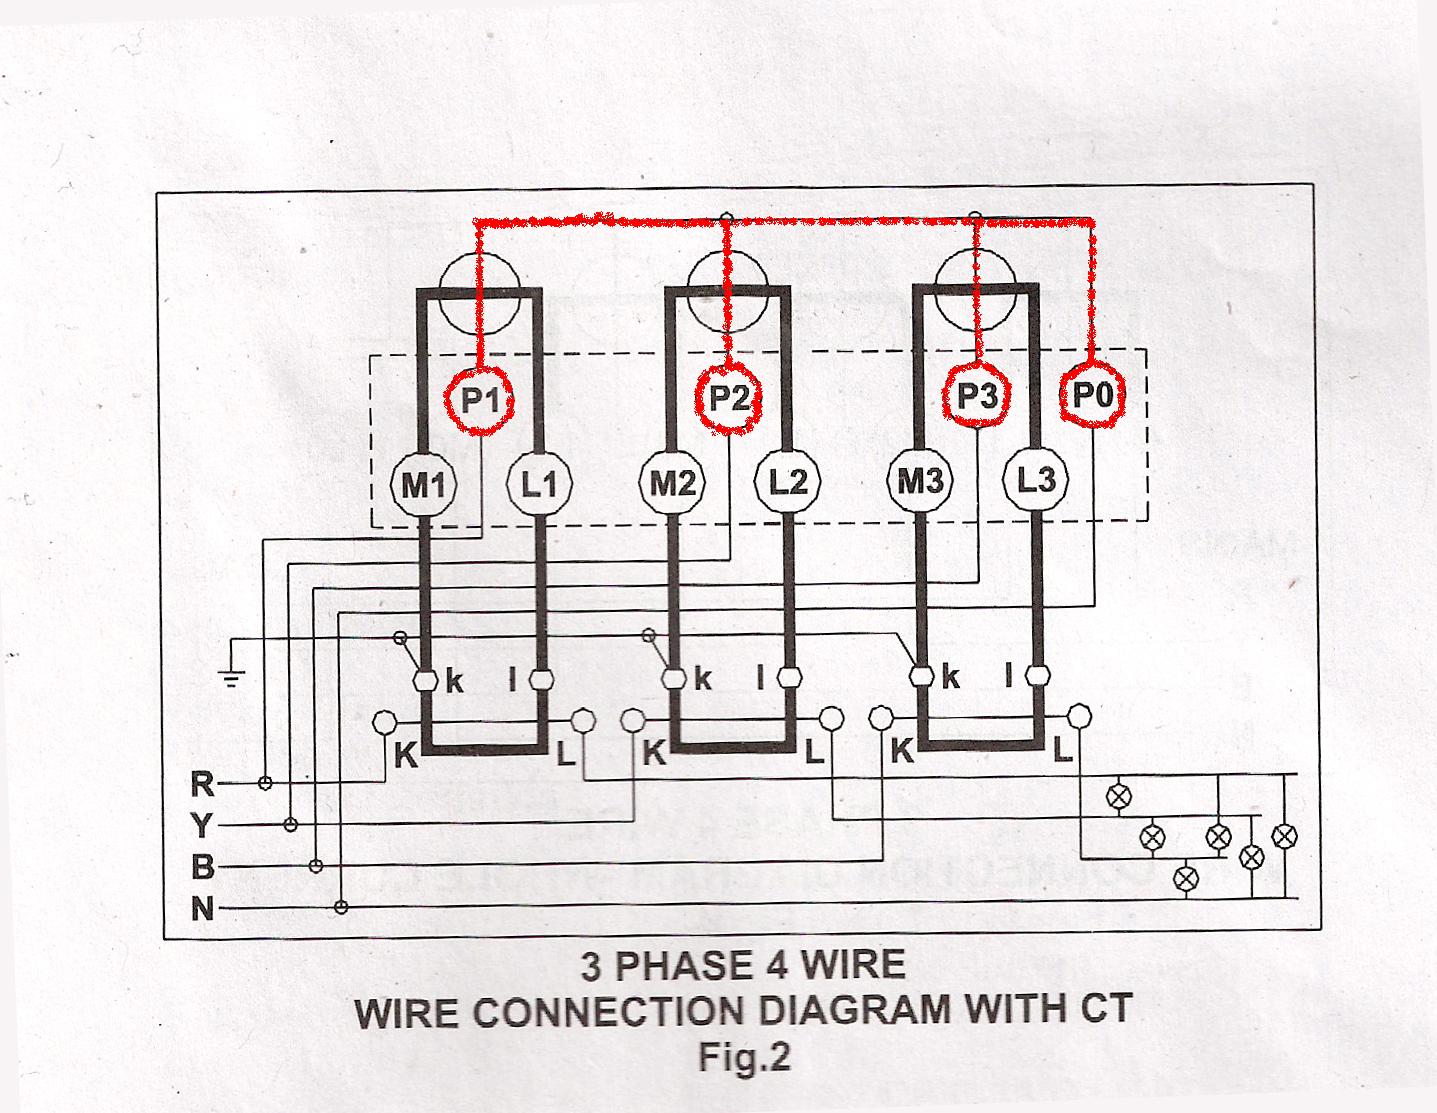 3 Phase 4 Wire Connection for L&T Whole Current Meter